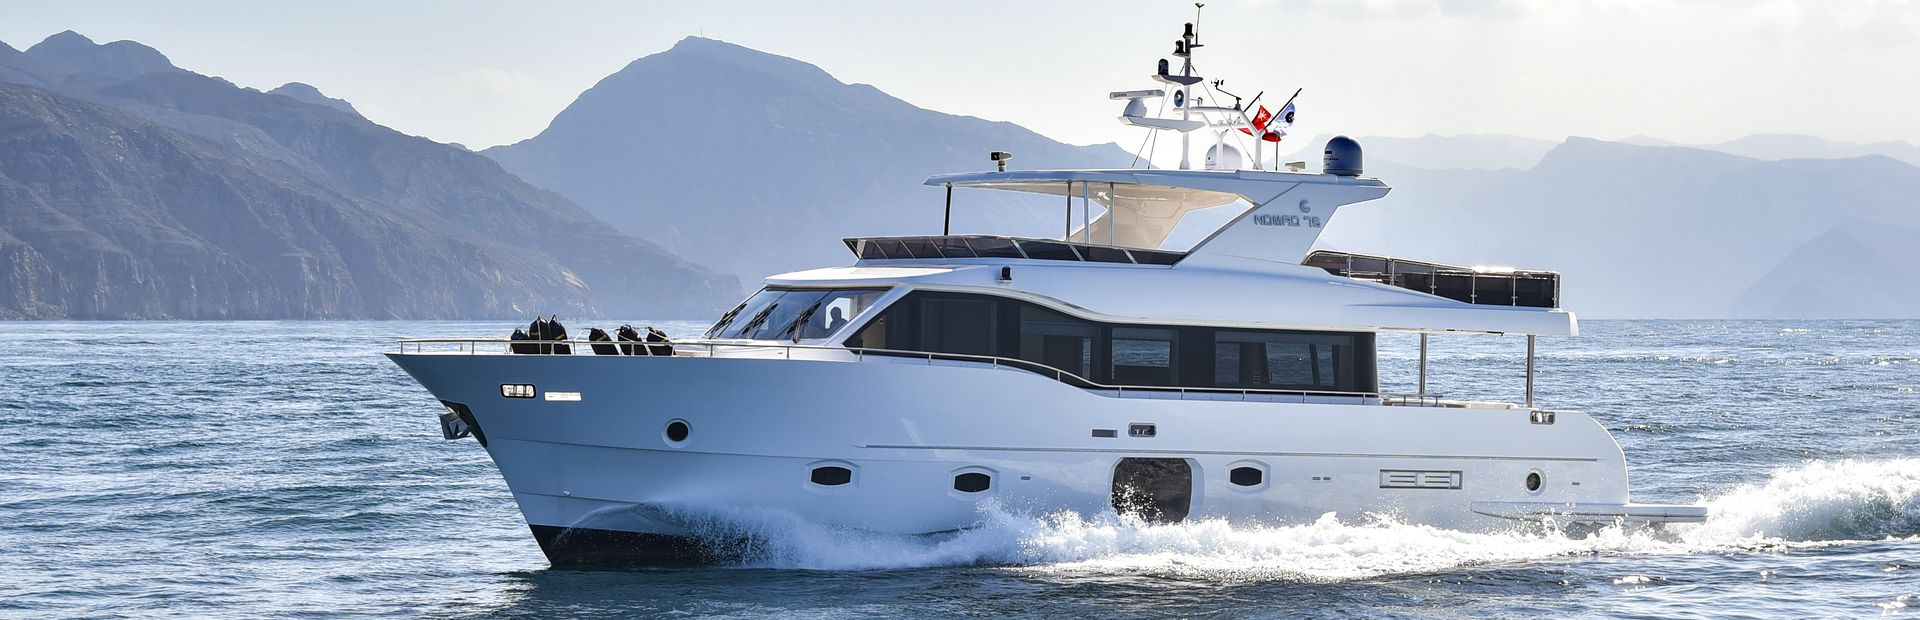 Nomad 75 Yacht Charter